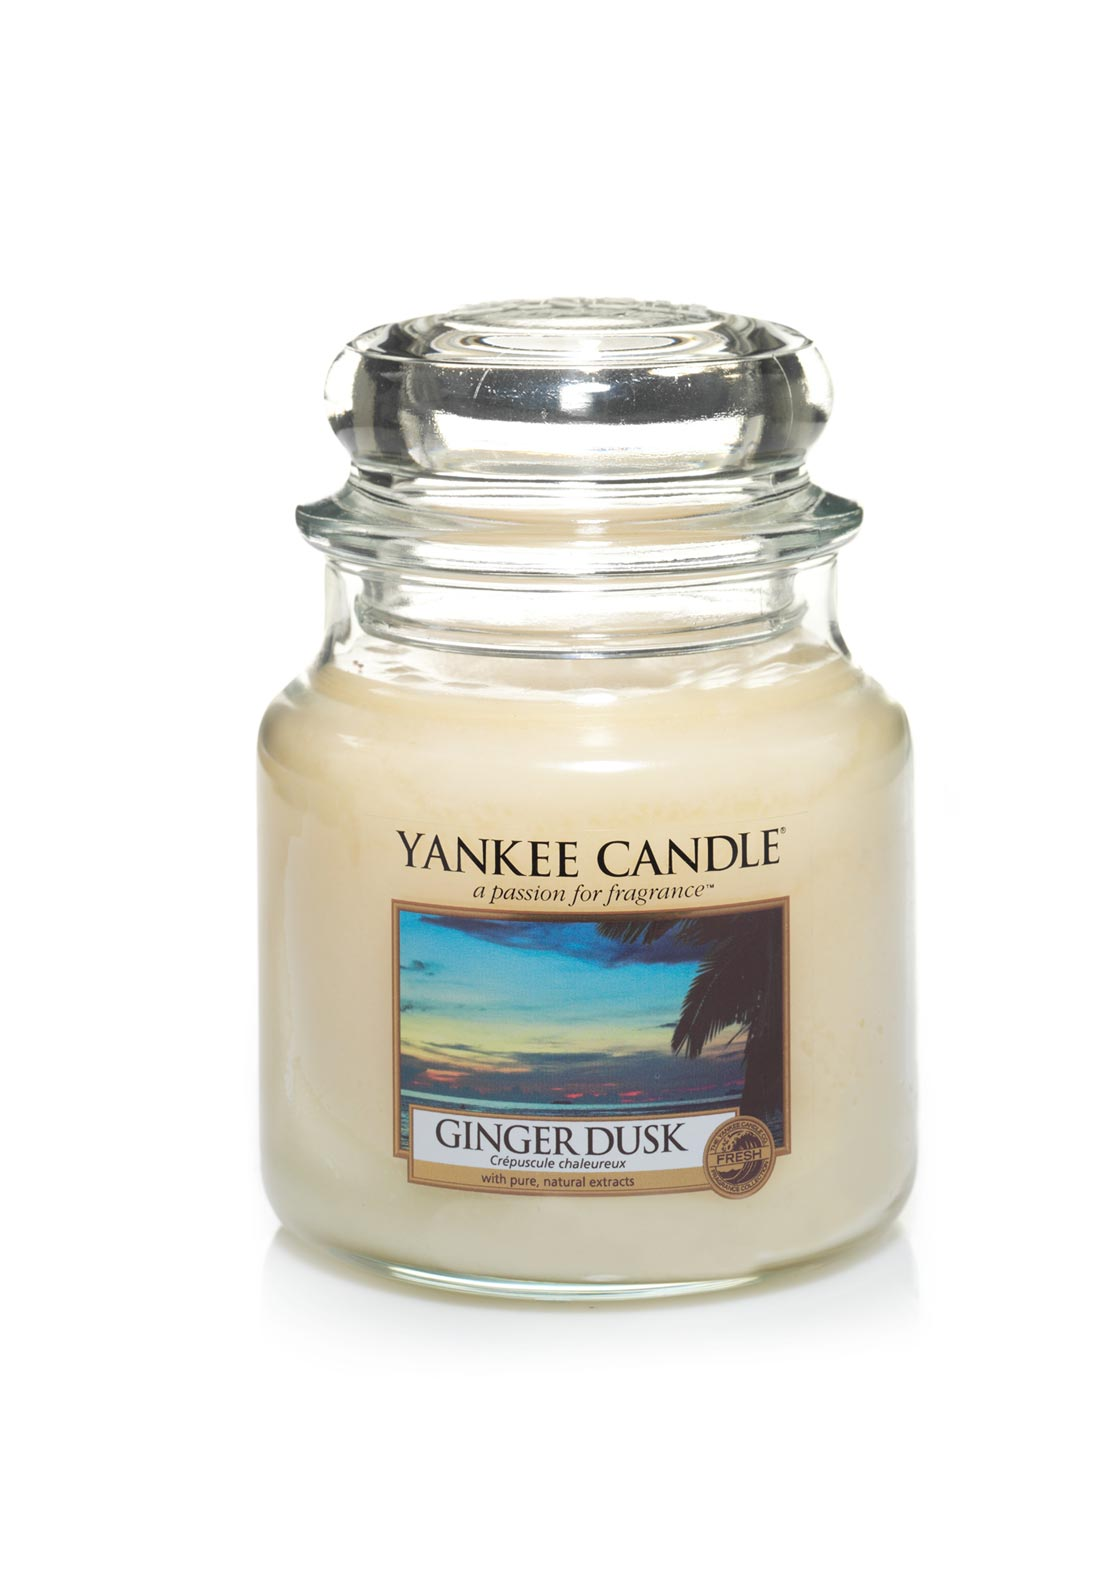 Yankee Candle Medium Classic Jar, Ginger Dusk